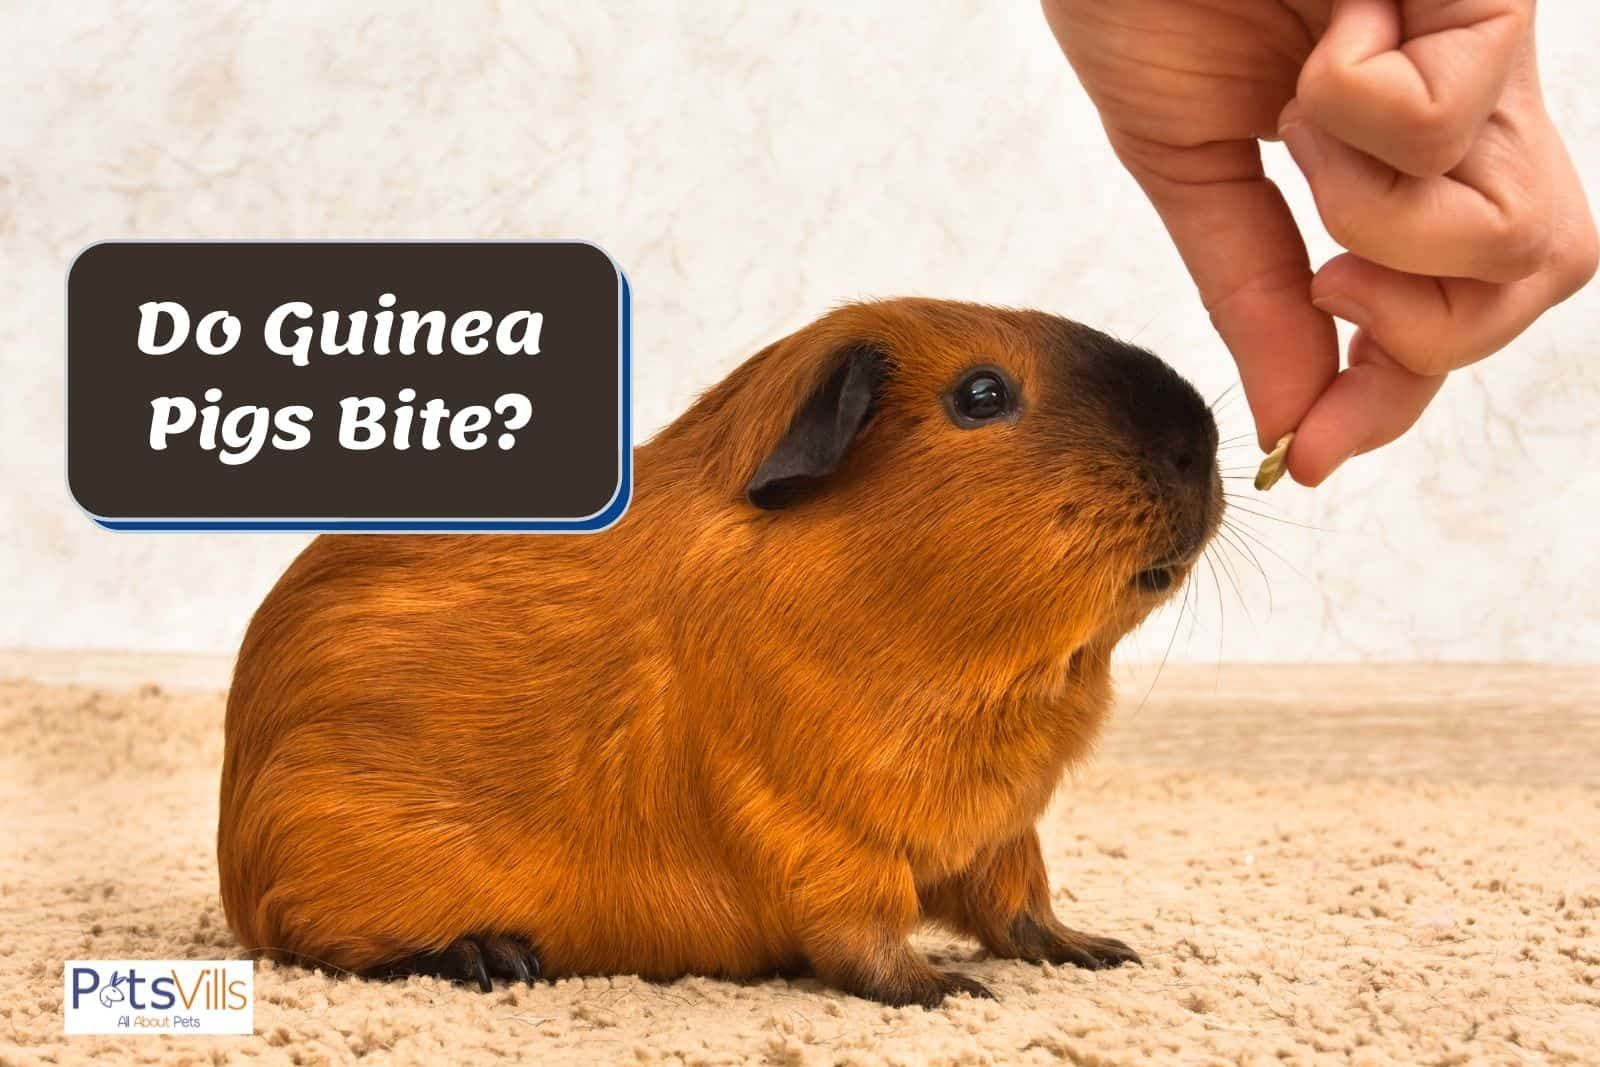 hand giving food to a cavy but do guinea pigs bite?